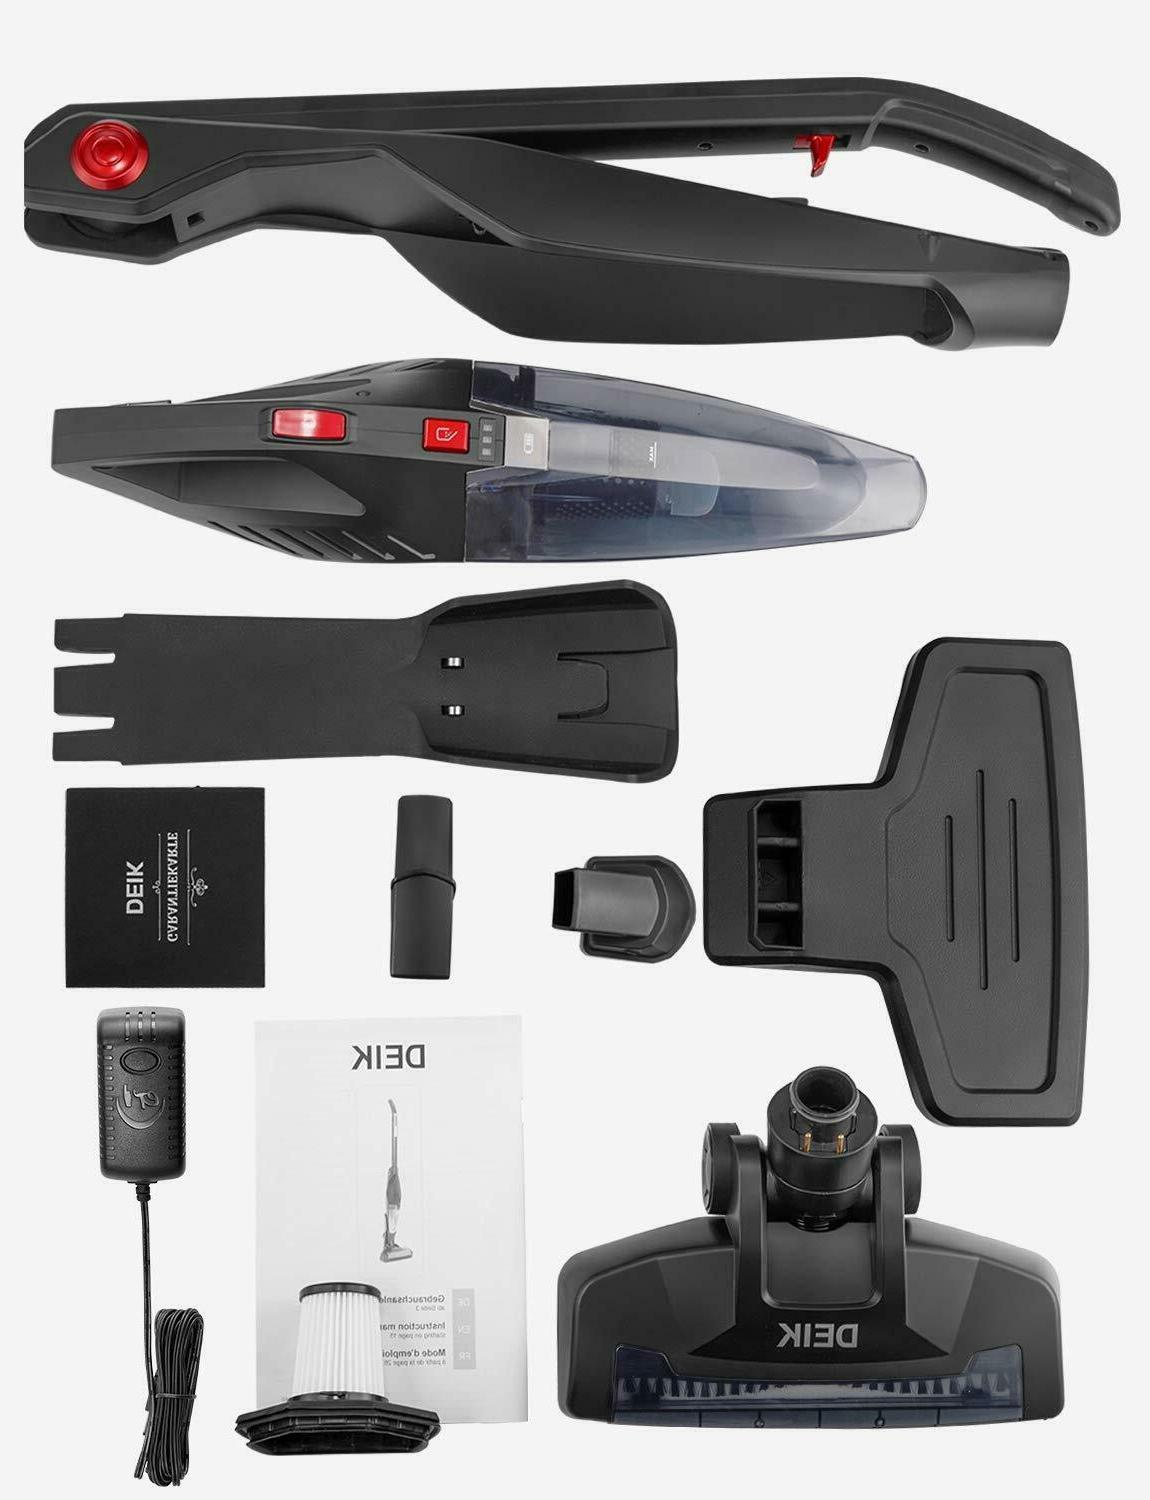 DEIK Cordless Rechargeable Lightweight Foldable 2in1